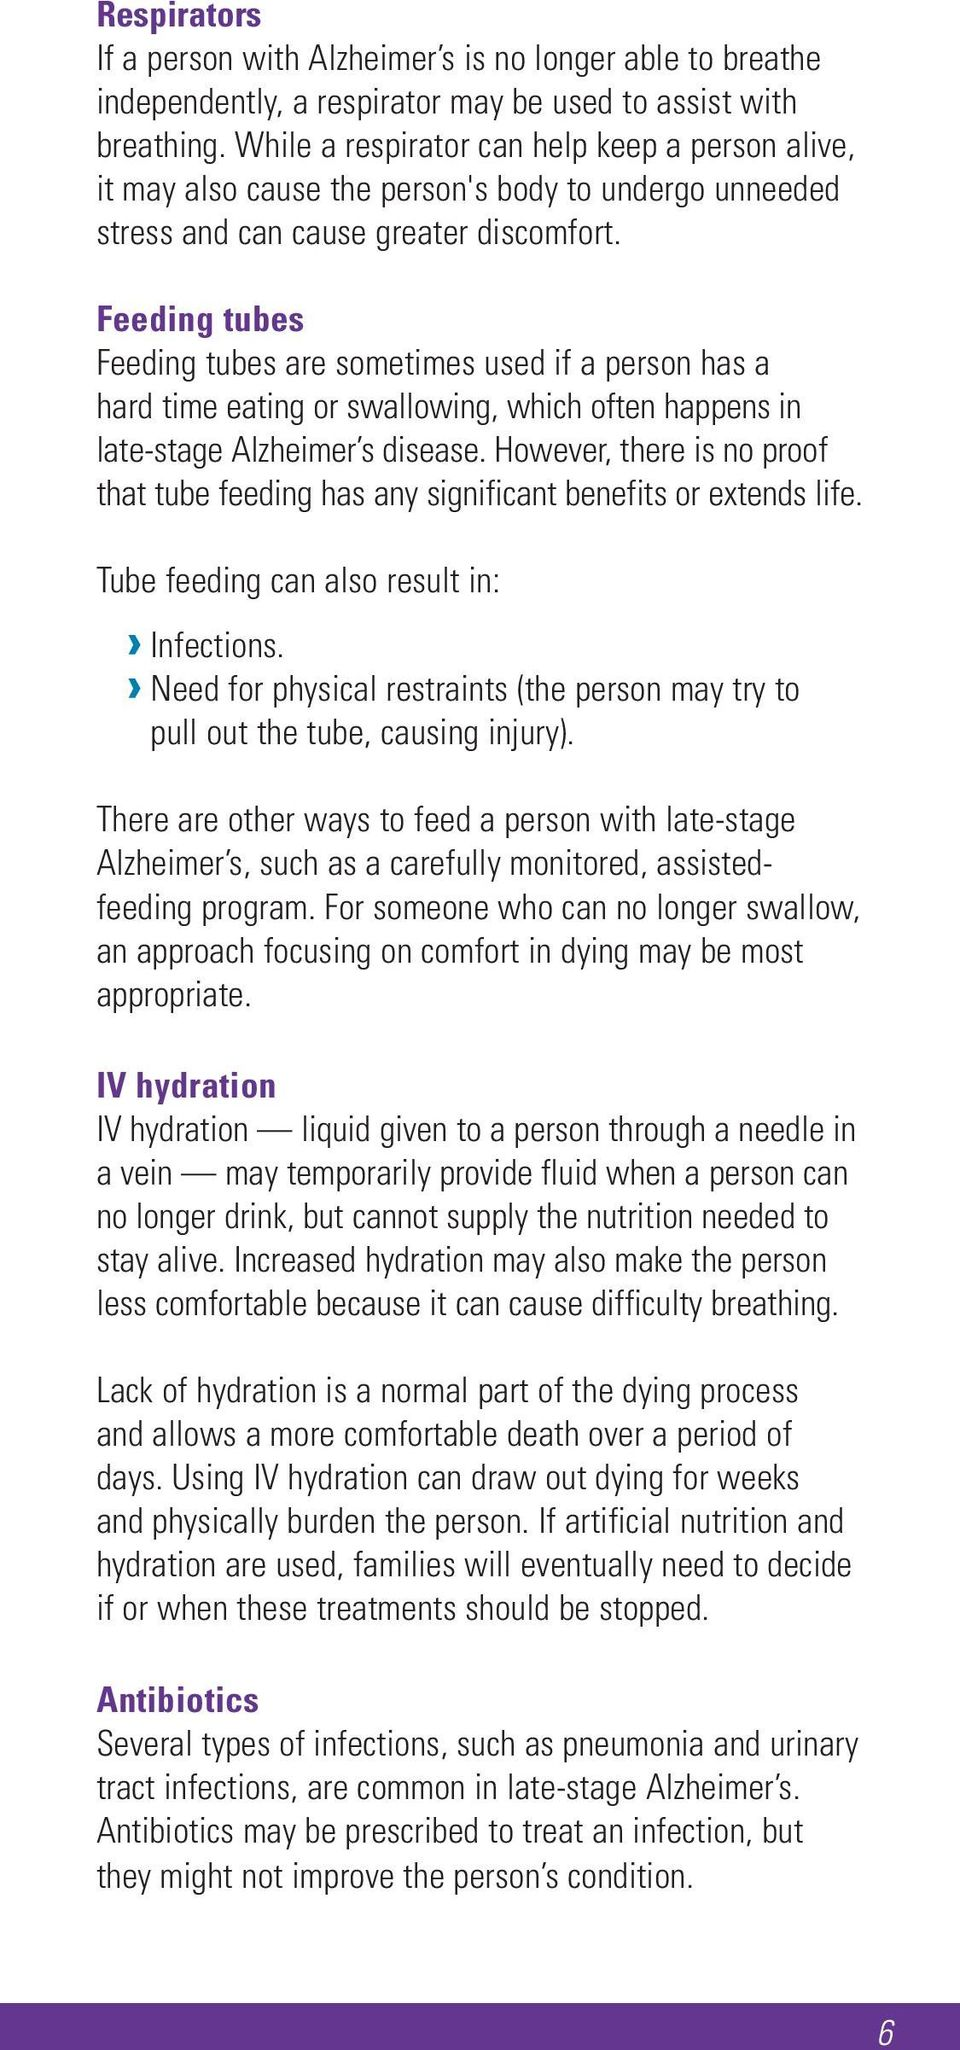 Feeding tubes Feeding tubes are sometimes used if a person has a hard time eating or swallowing, which often happens in late-stage Alzheimer s disease.